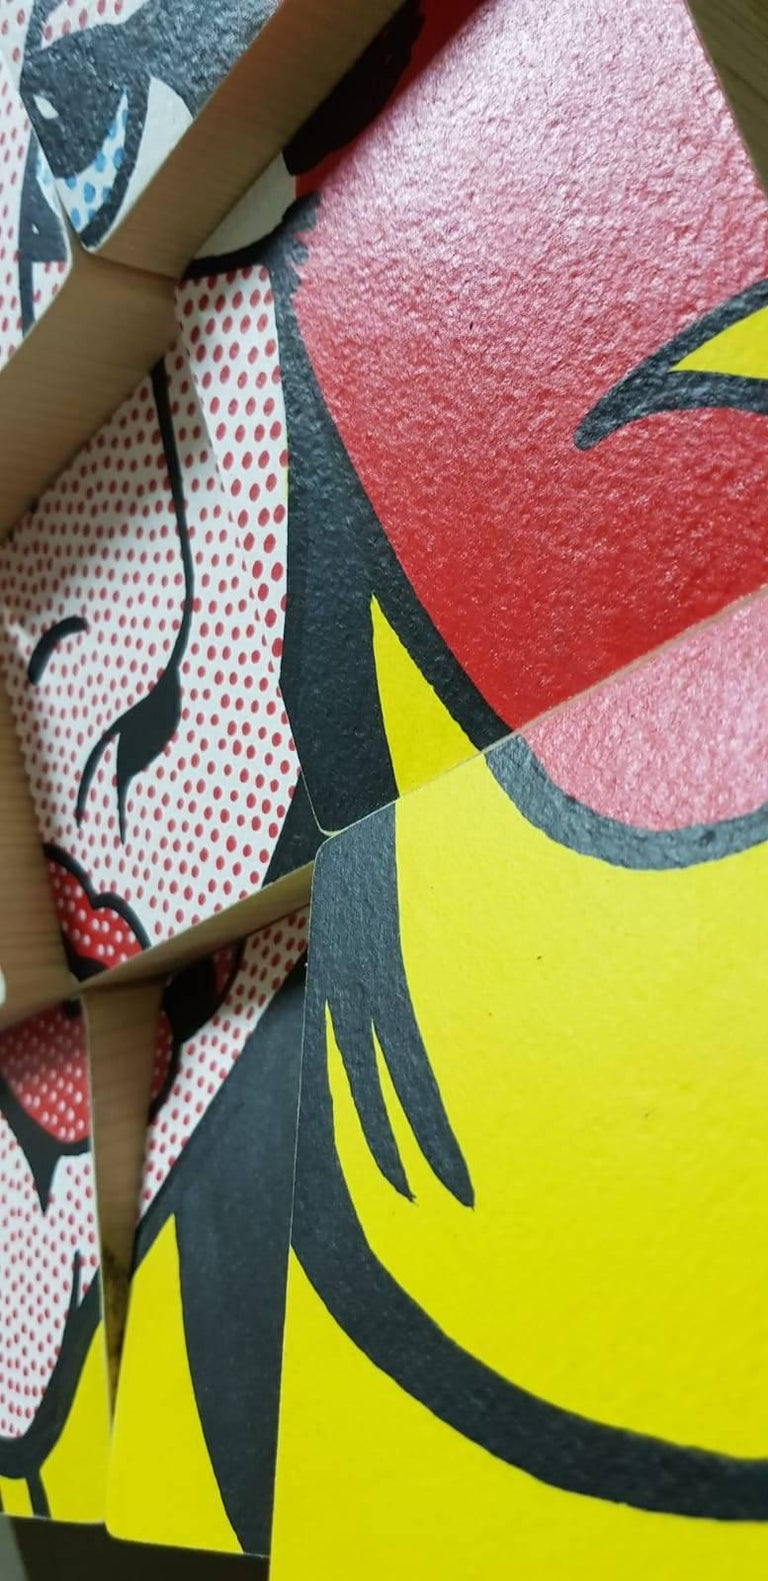 My Girl tribute to Roy Lichtenstein Acrylic Paint on Cotton Paper, Wooden Blocks For Sale 1